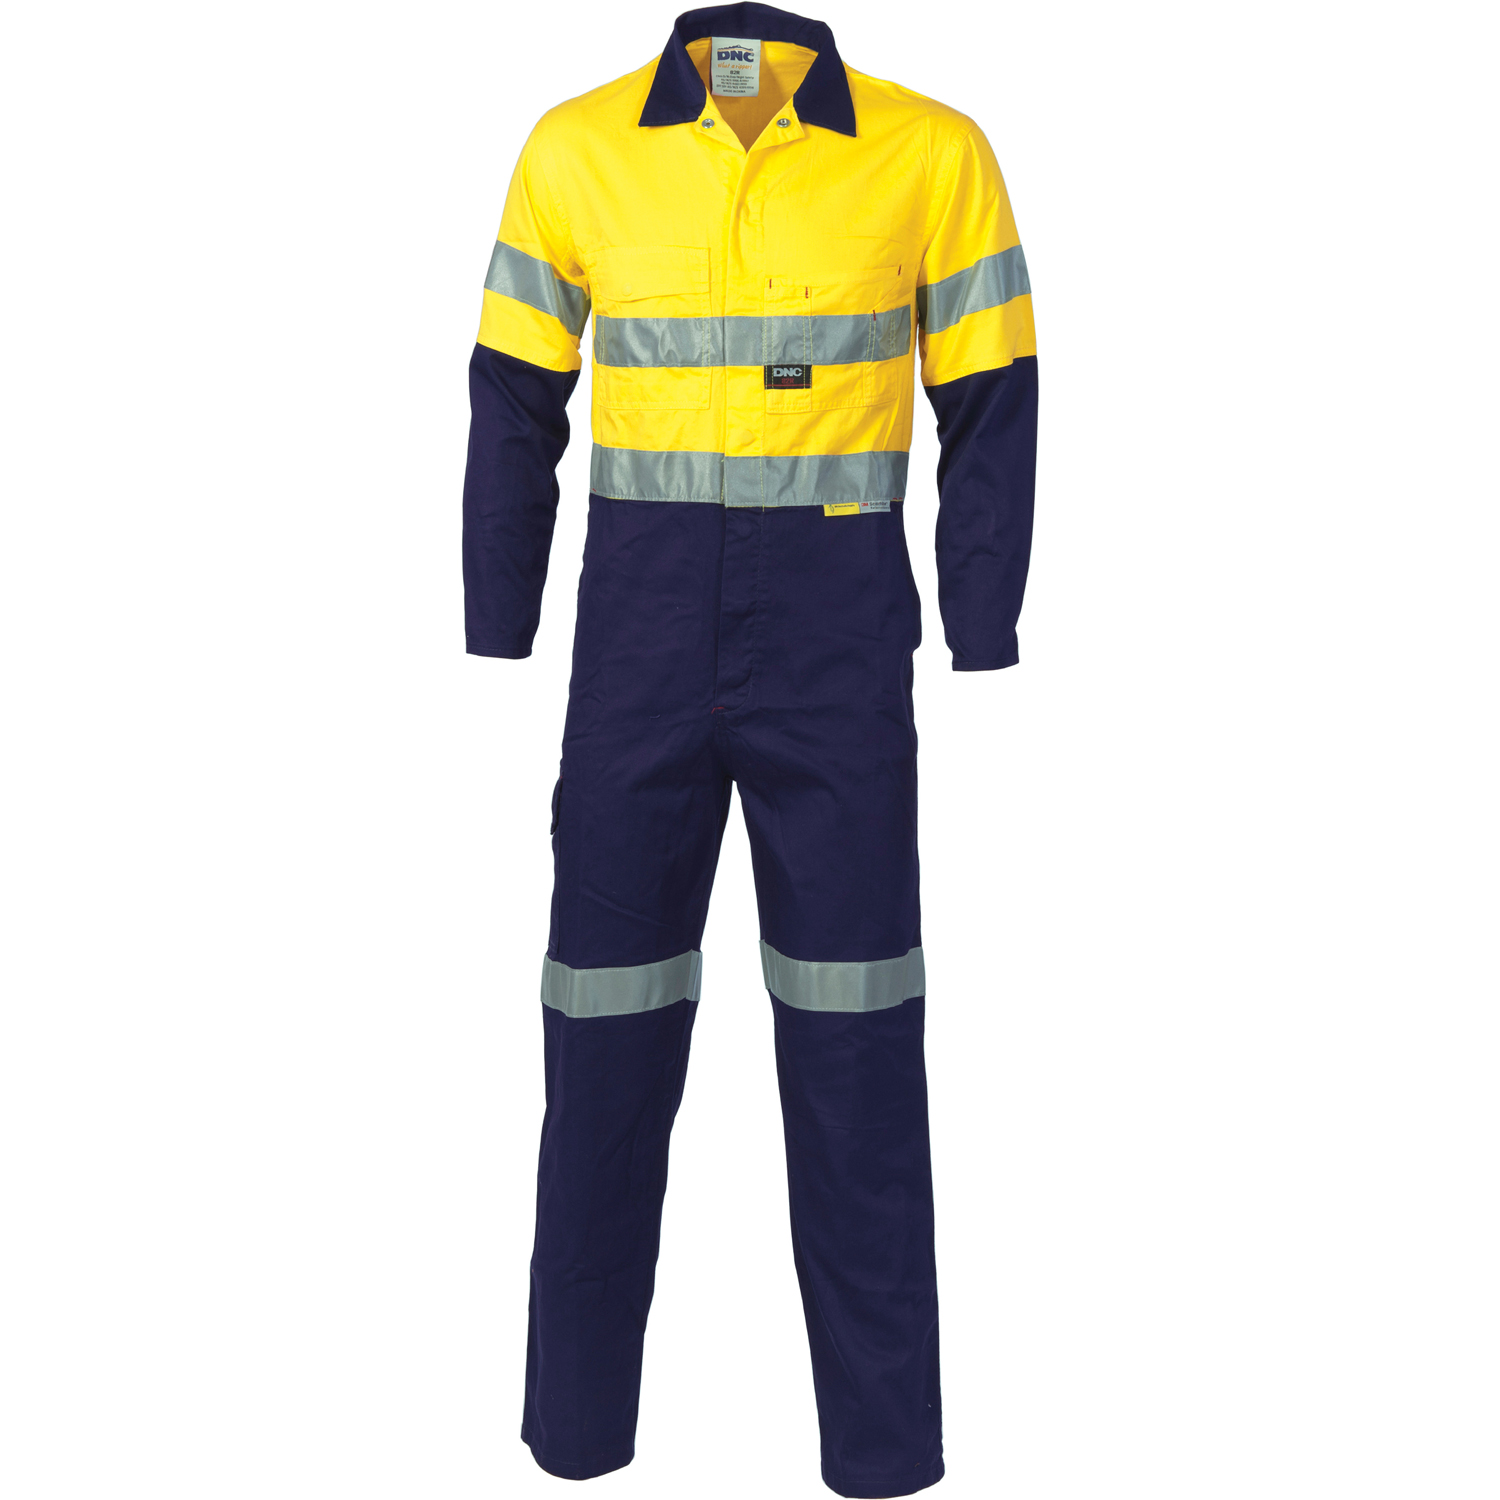 DNC 3855-311gsm HiVis Two Tone Cotton Coverall with 3M R/Tape